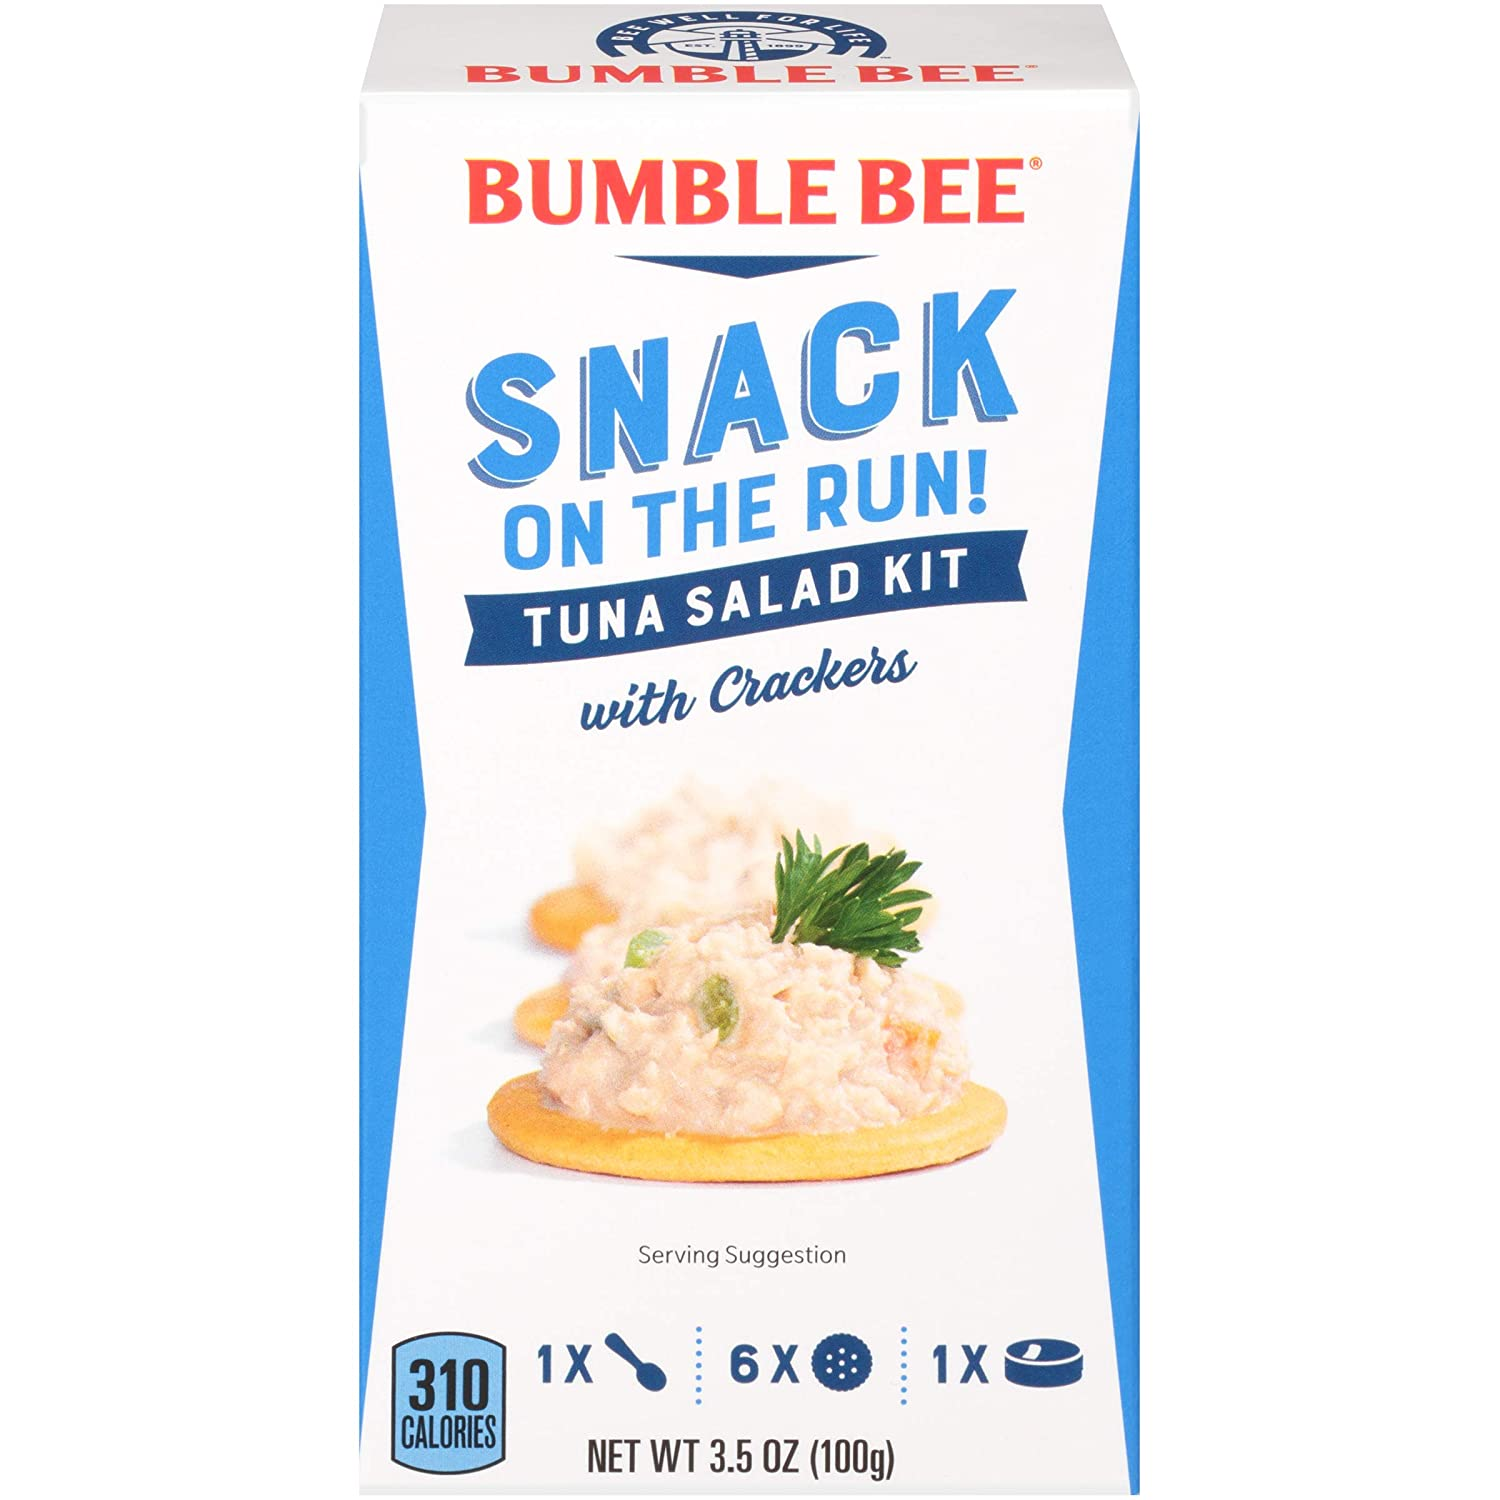 BUMBLE BEE Snack on the Run! Tuna Salad with Crackers Kit, 3.5 Ounce Kit (Pack of 3), High Protein Snack Food, Canned Tuna, Healthy Snacks for Adults